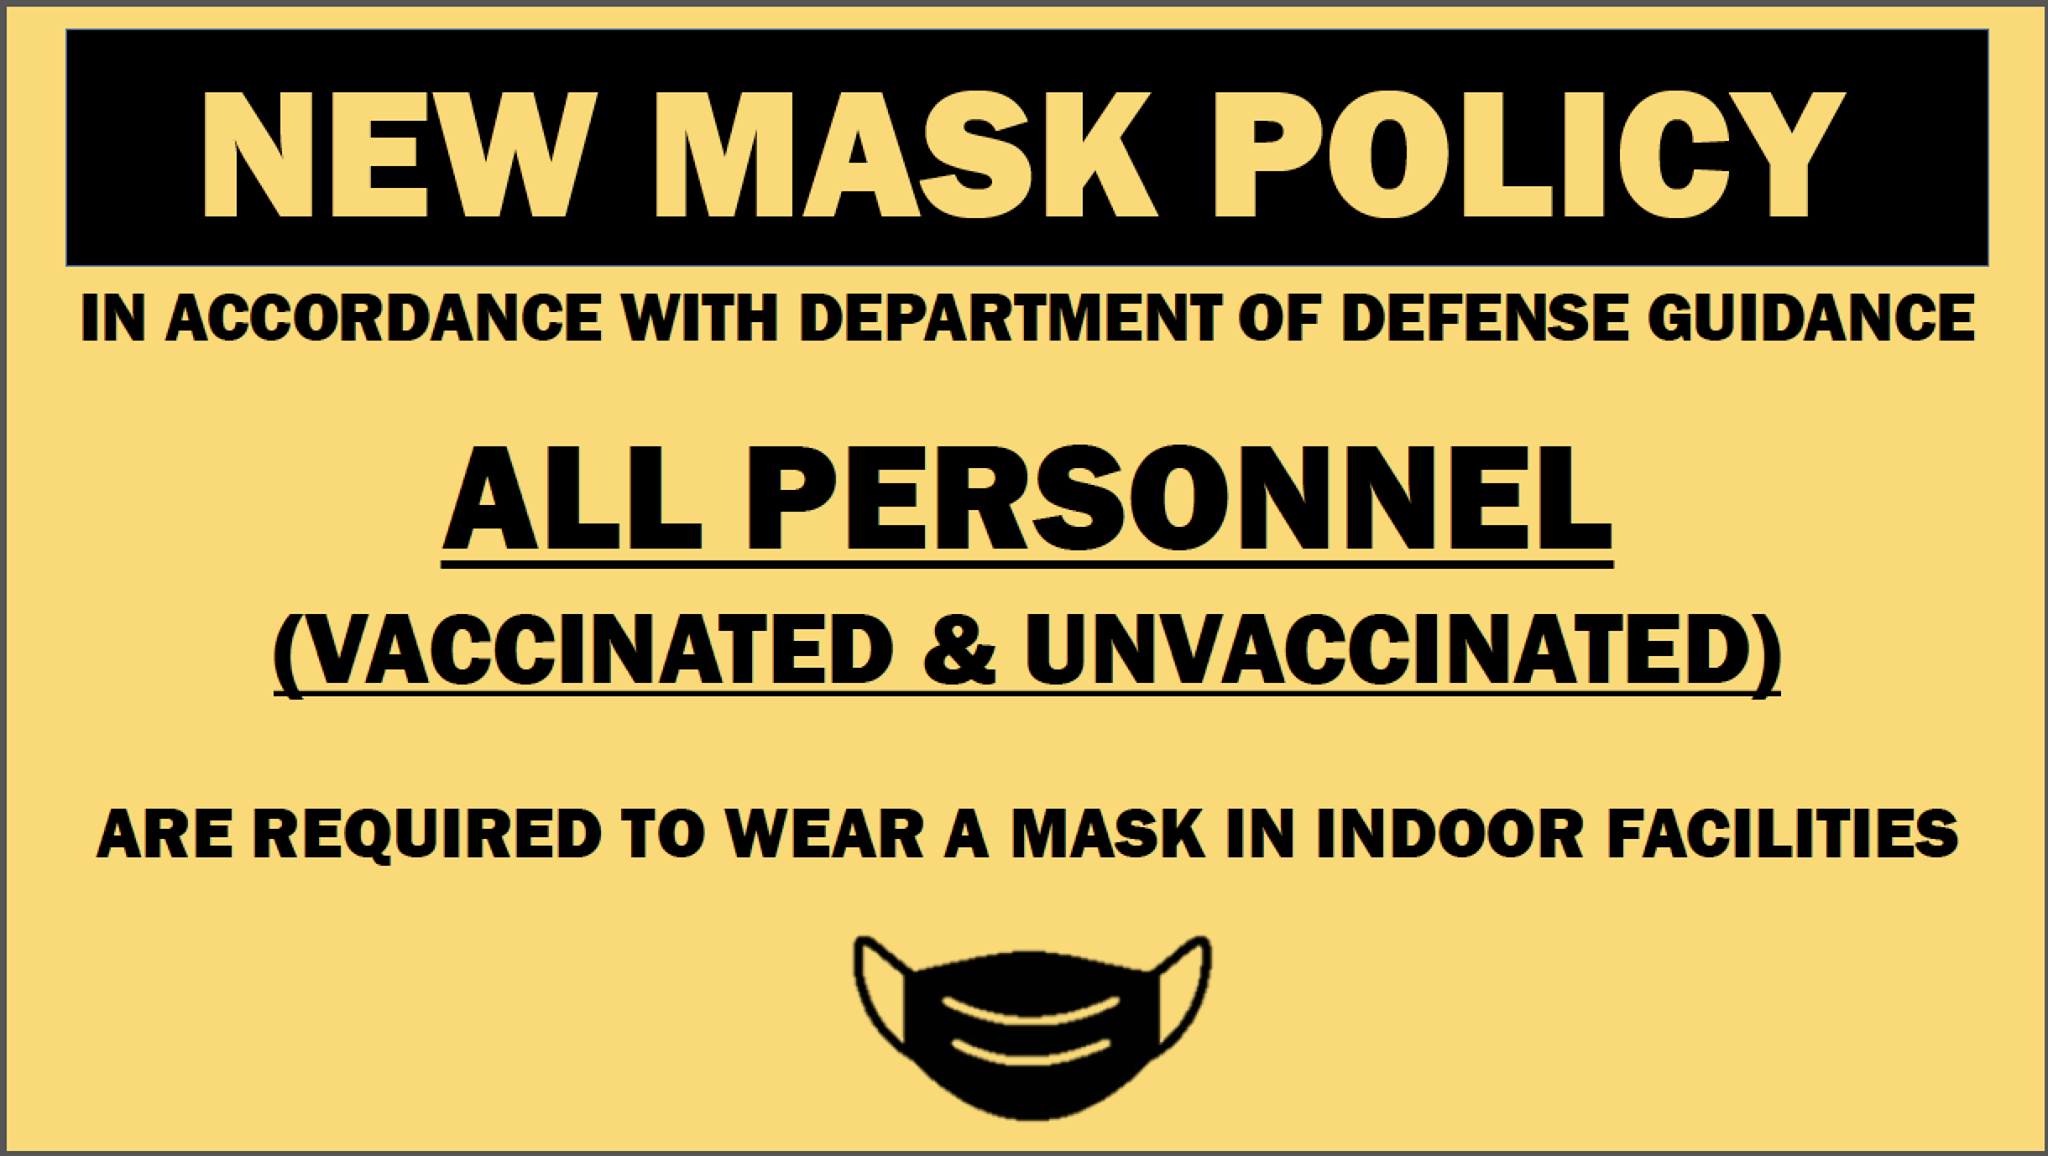 New Mask Policy image